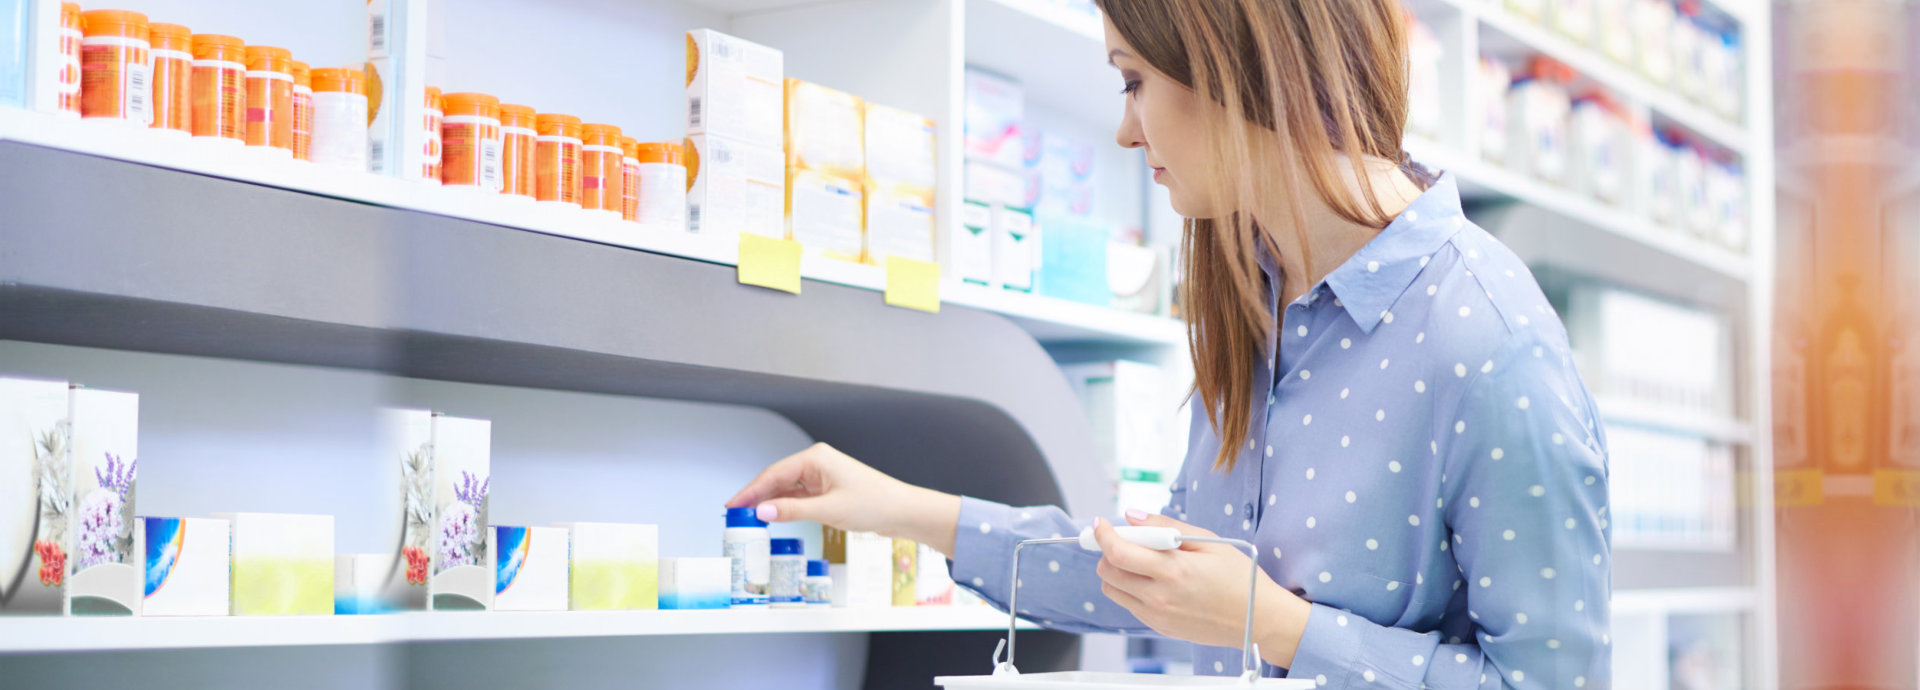 a pharmacist helping a lady